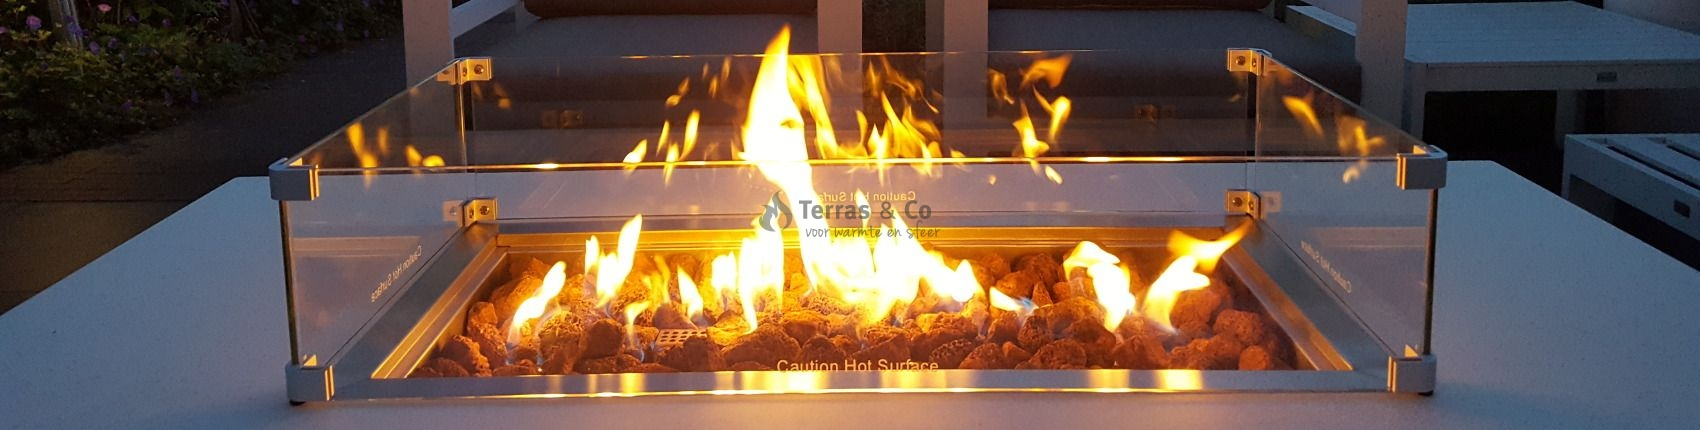 Web store for the most beautiful Fire Tables, Built-in Burners & Outdoor Fireplaces!